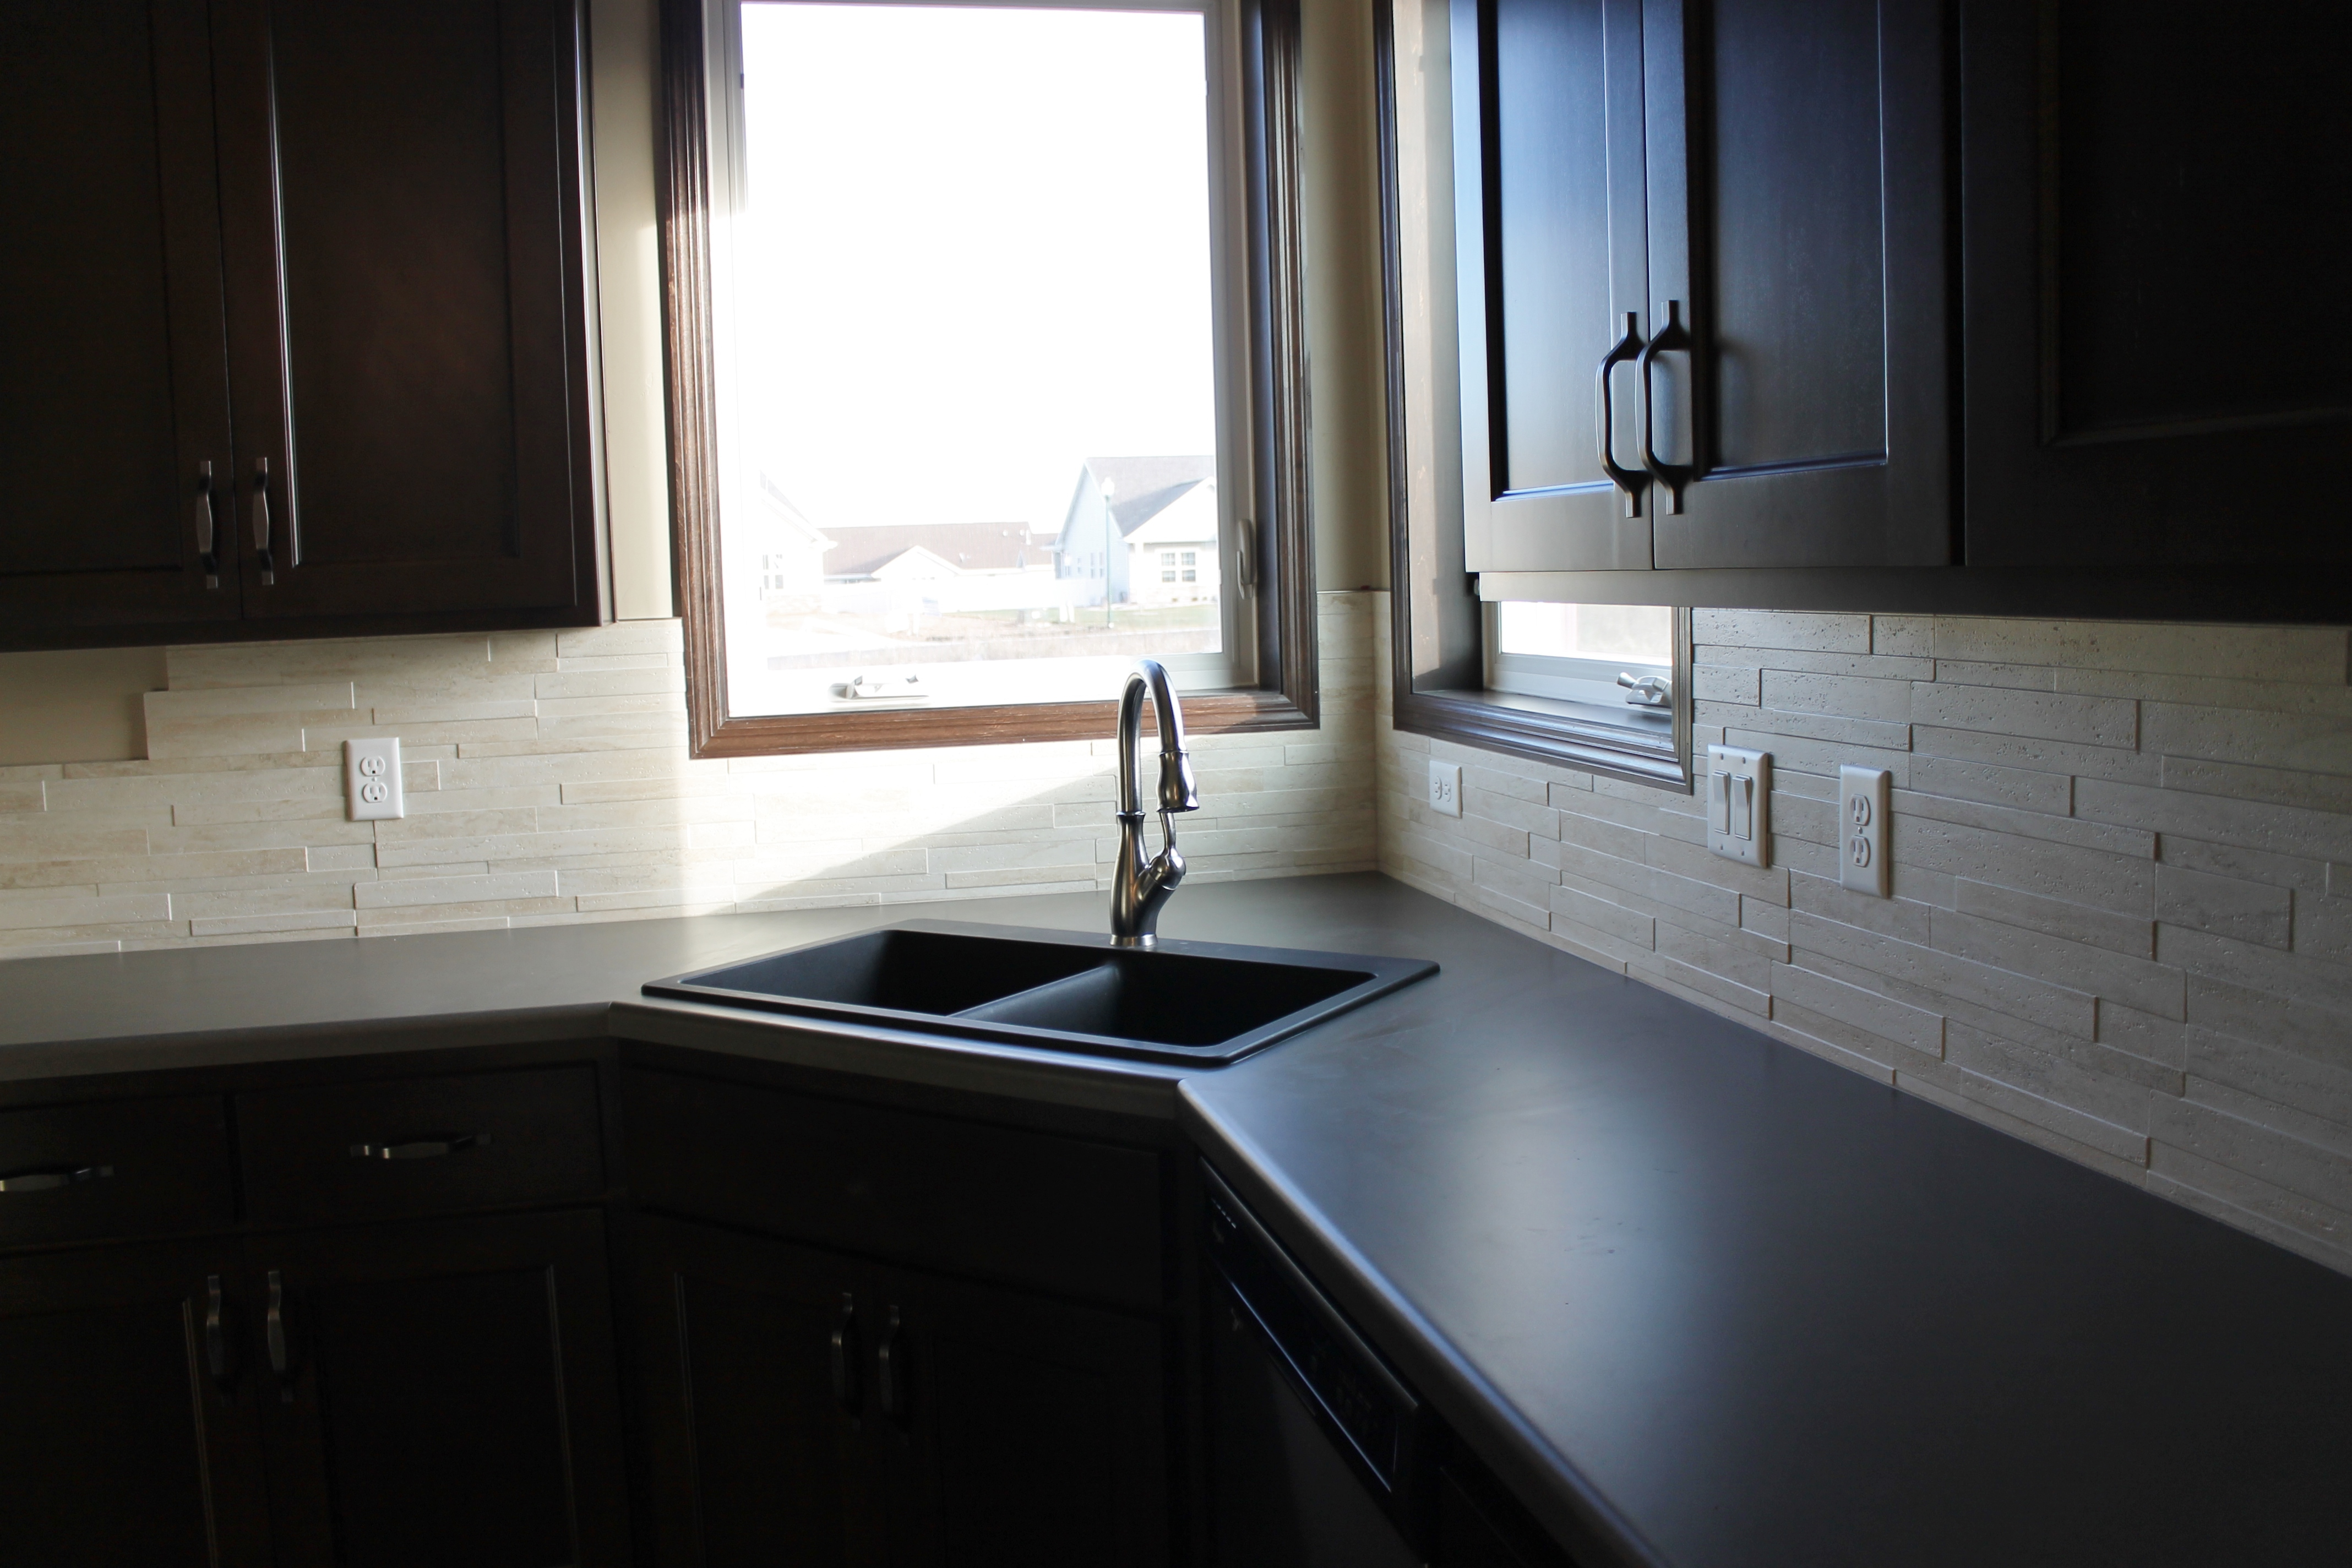 How To Cut Sink In Laminate Countertop Latest Trends In Laminate Counters Katie Jane Interiors